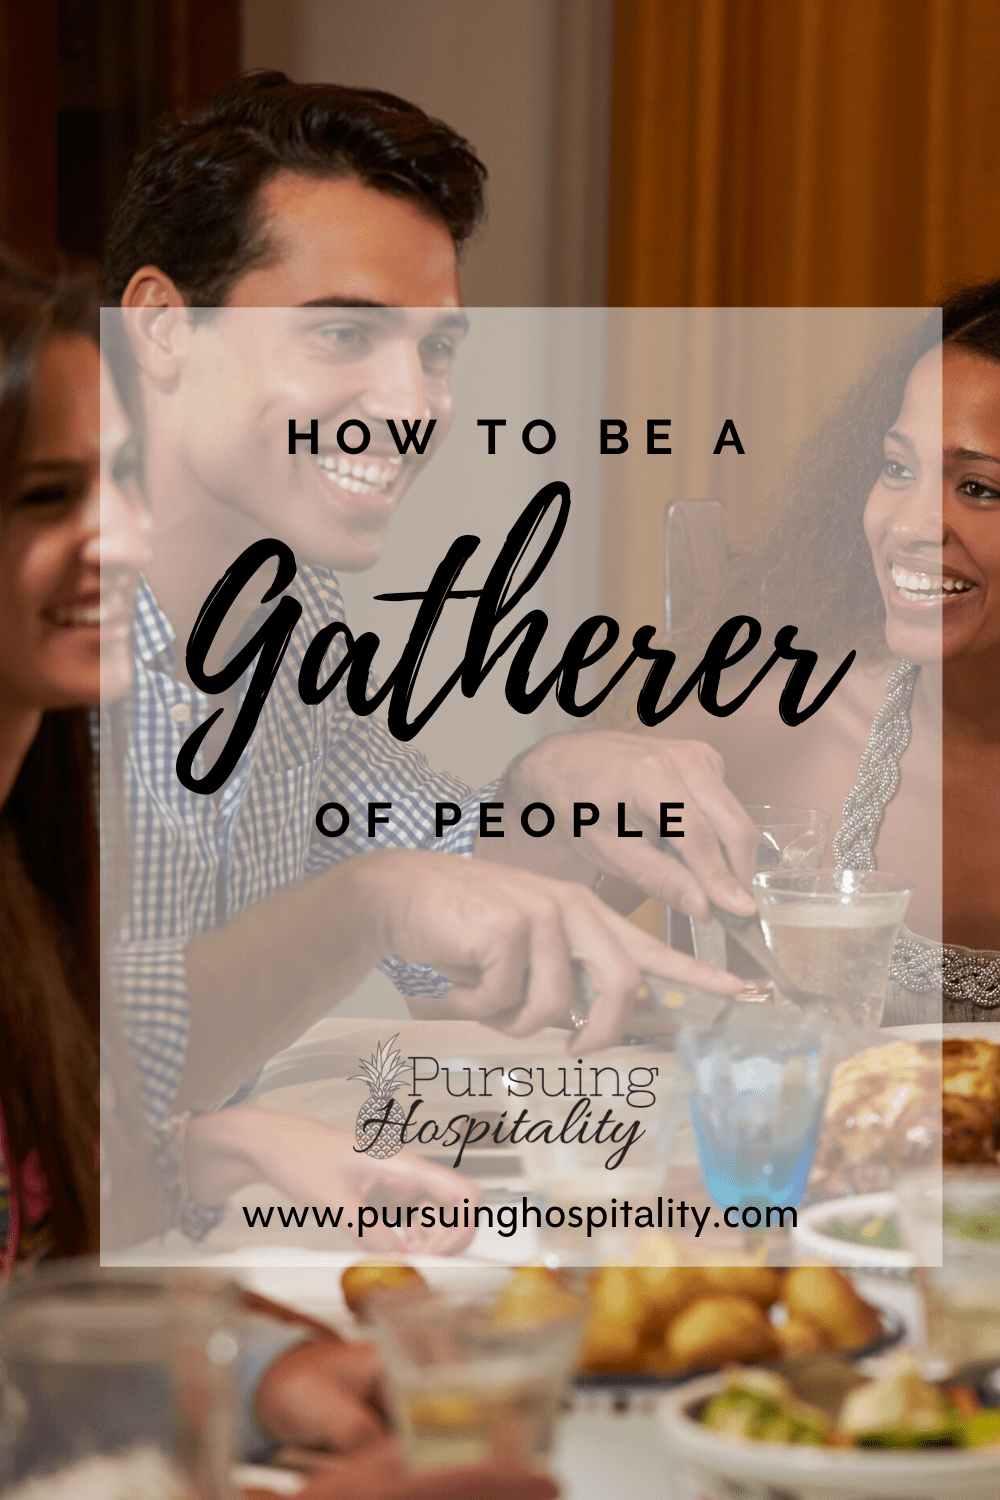 How to be a gatherer